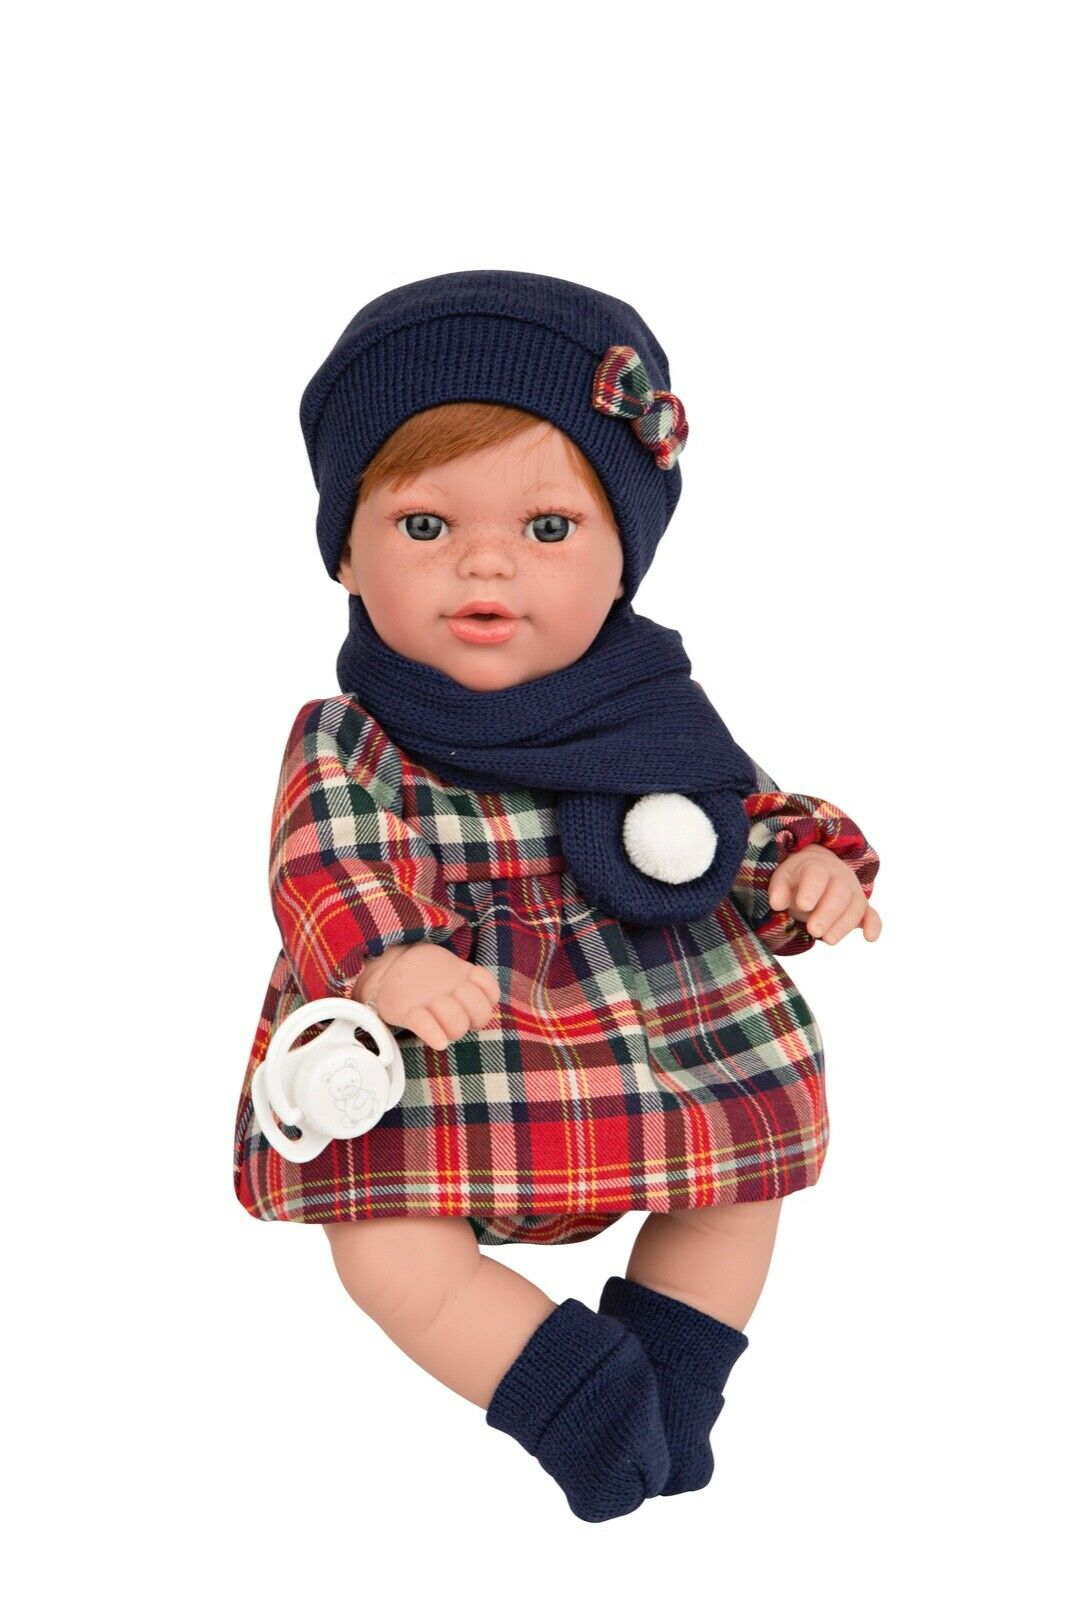 Spanish Crying & Talking Newborn baby dolls With Accessories